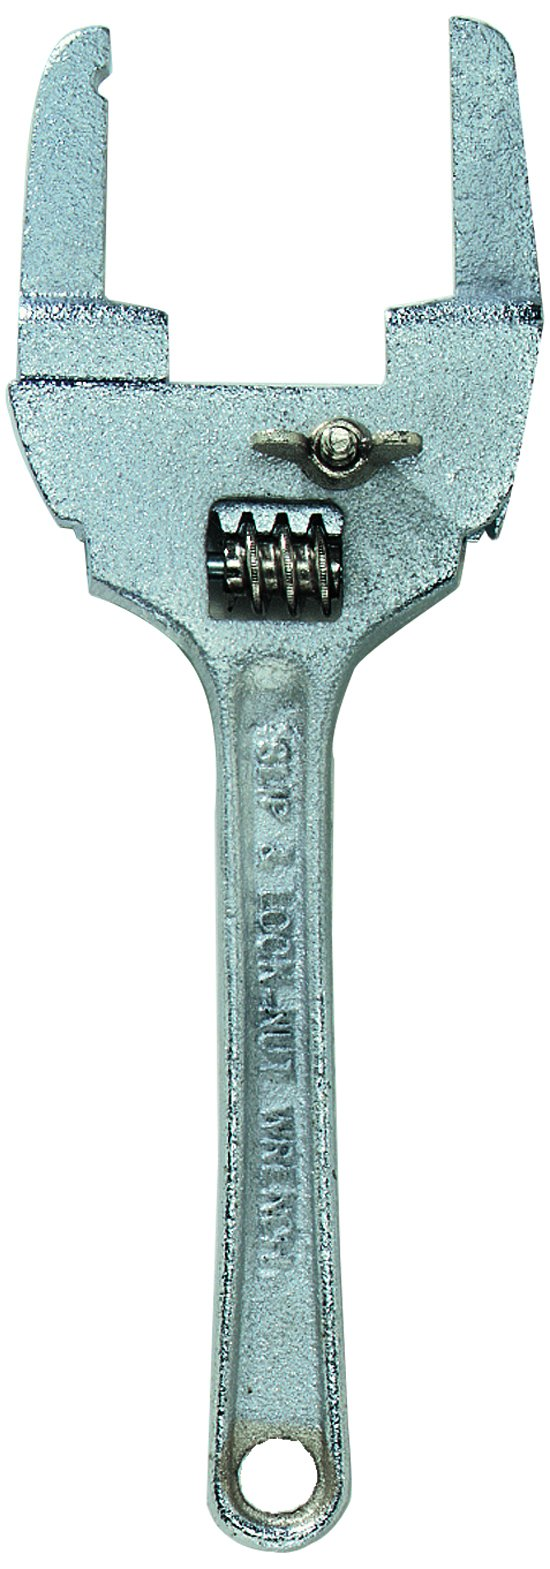 General Tools 190 Adjustable Sink Wrench by General Tools